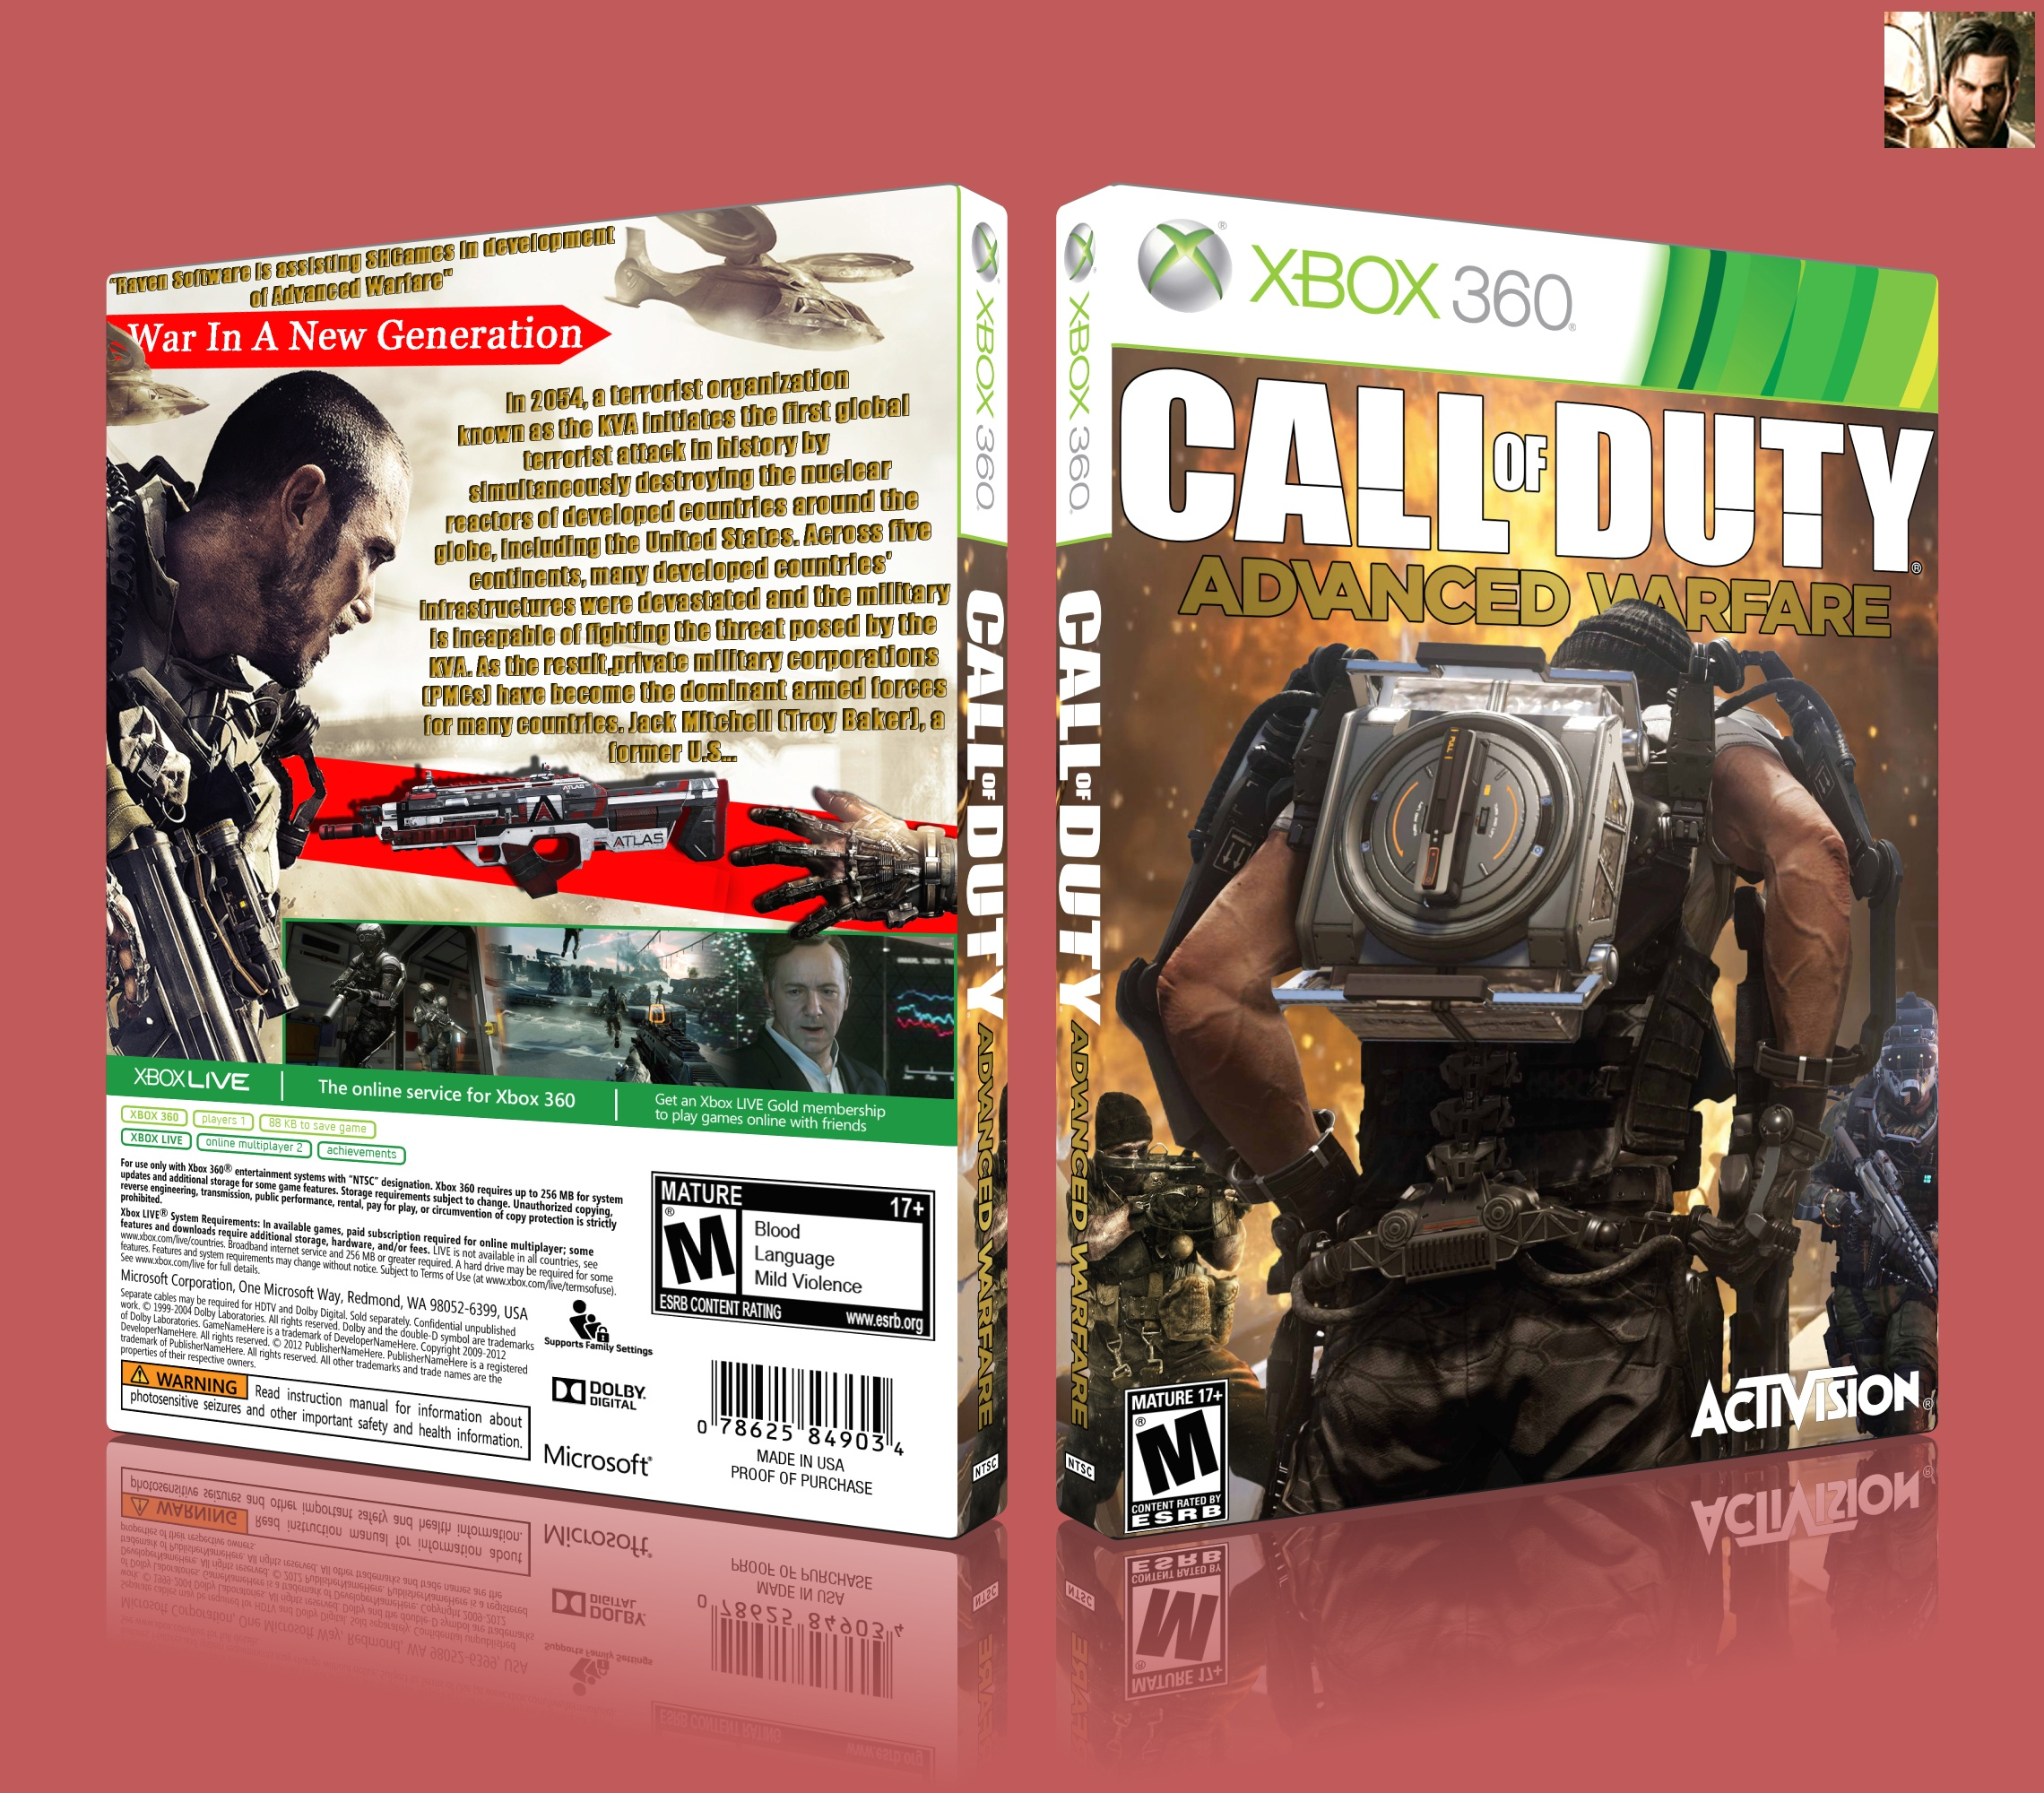 Call of Duty Advanced Warfare box cover